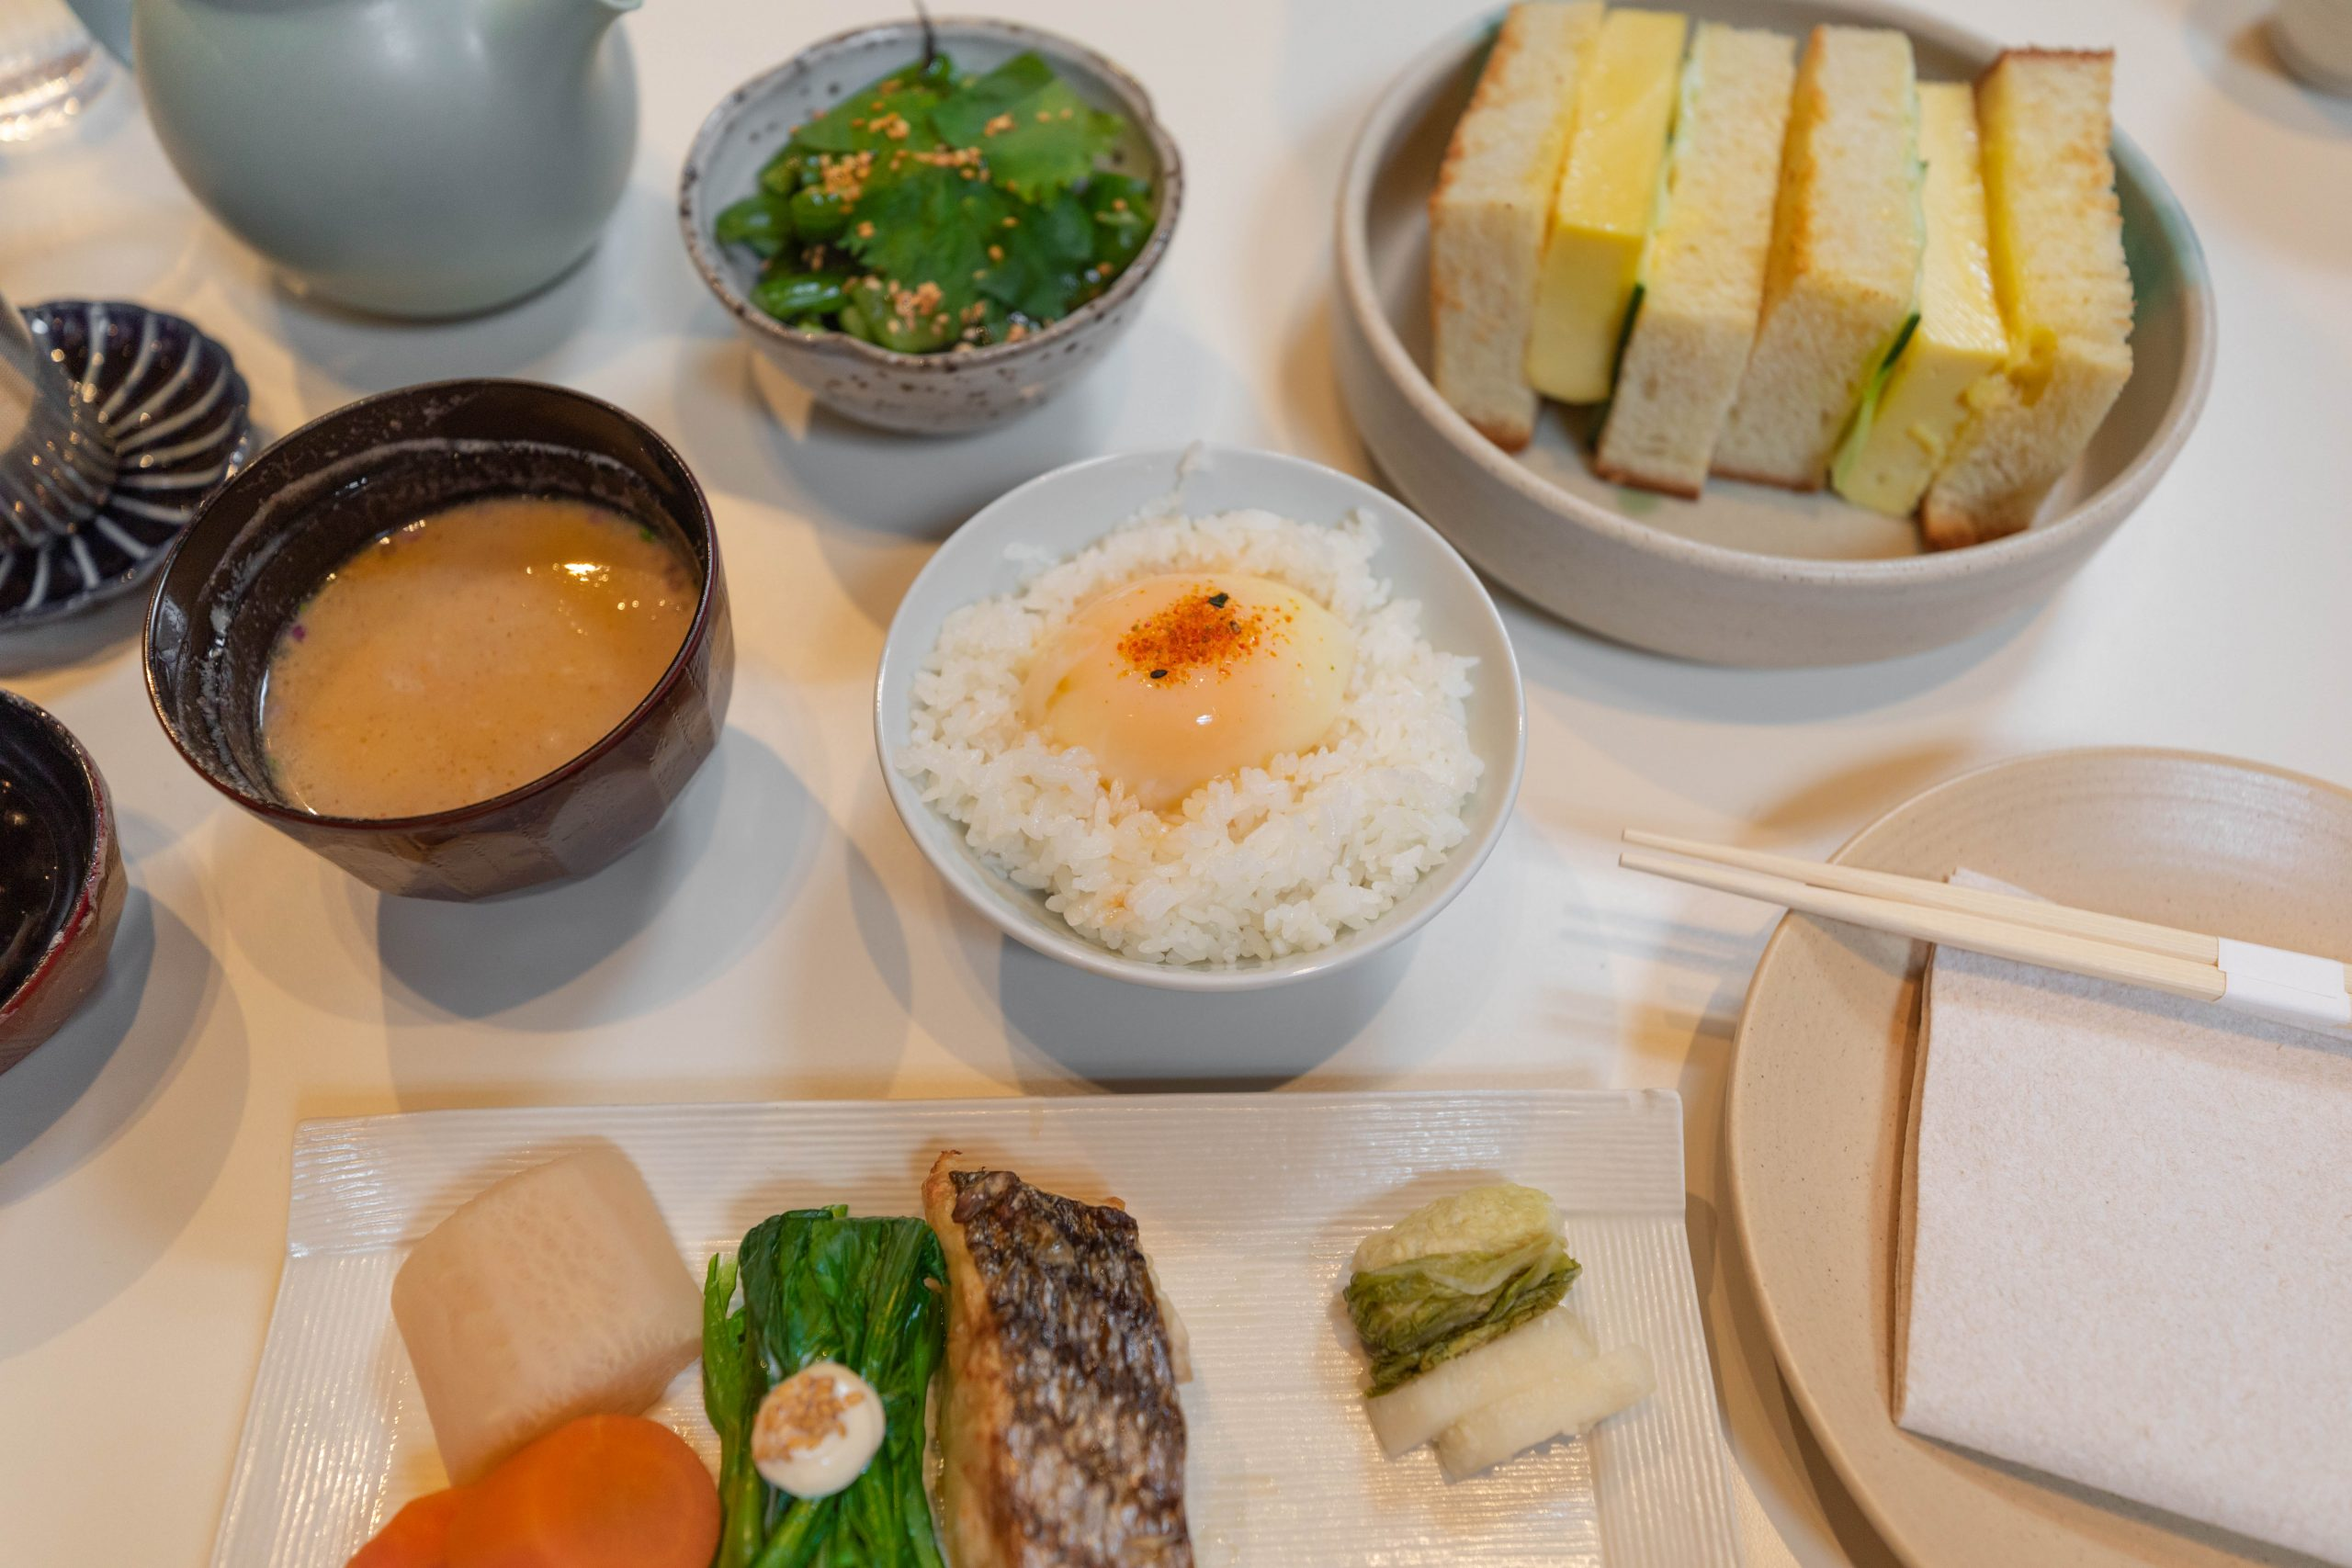 Rule of Thirds Brooklyn Japanese Food Breakfast Set in New York City NYC Fine Dining Asian Cuisine Luxury Restaurants of the World Written and Photographed by Annie Fairfax